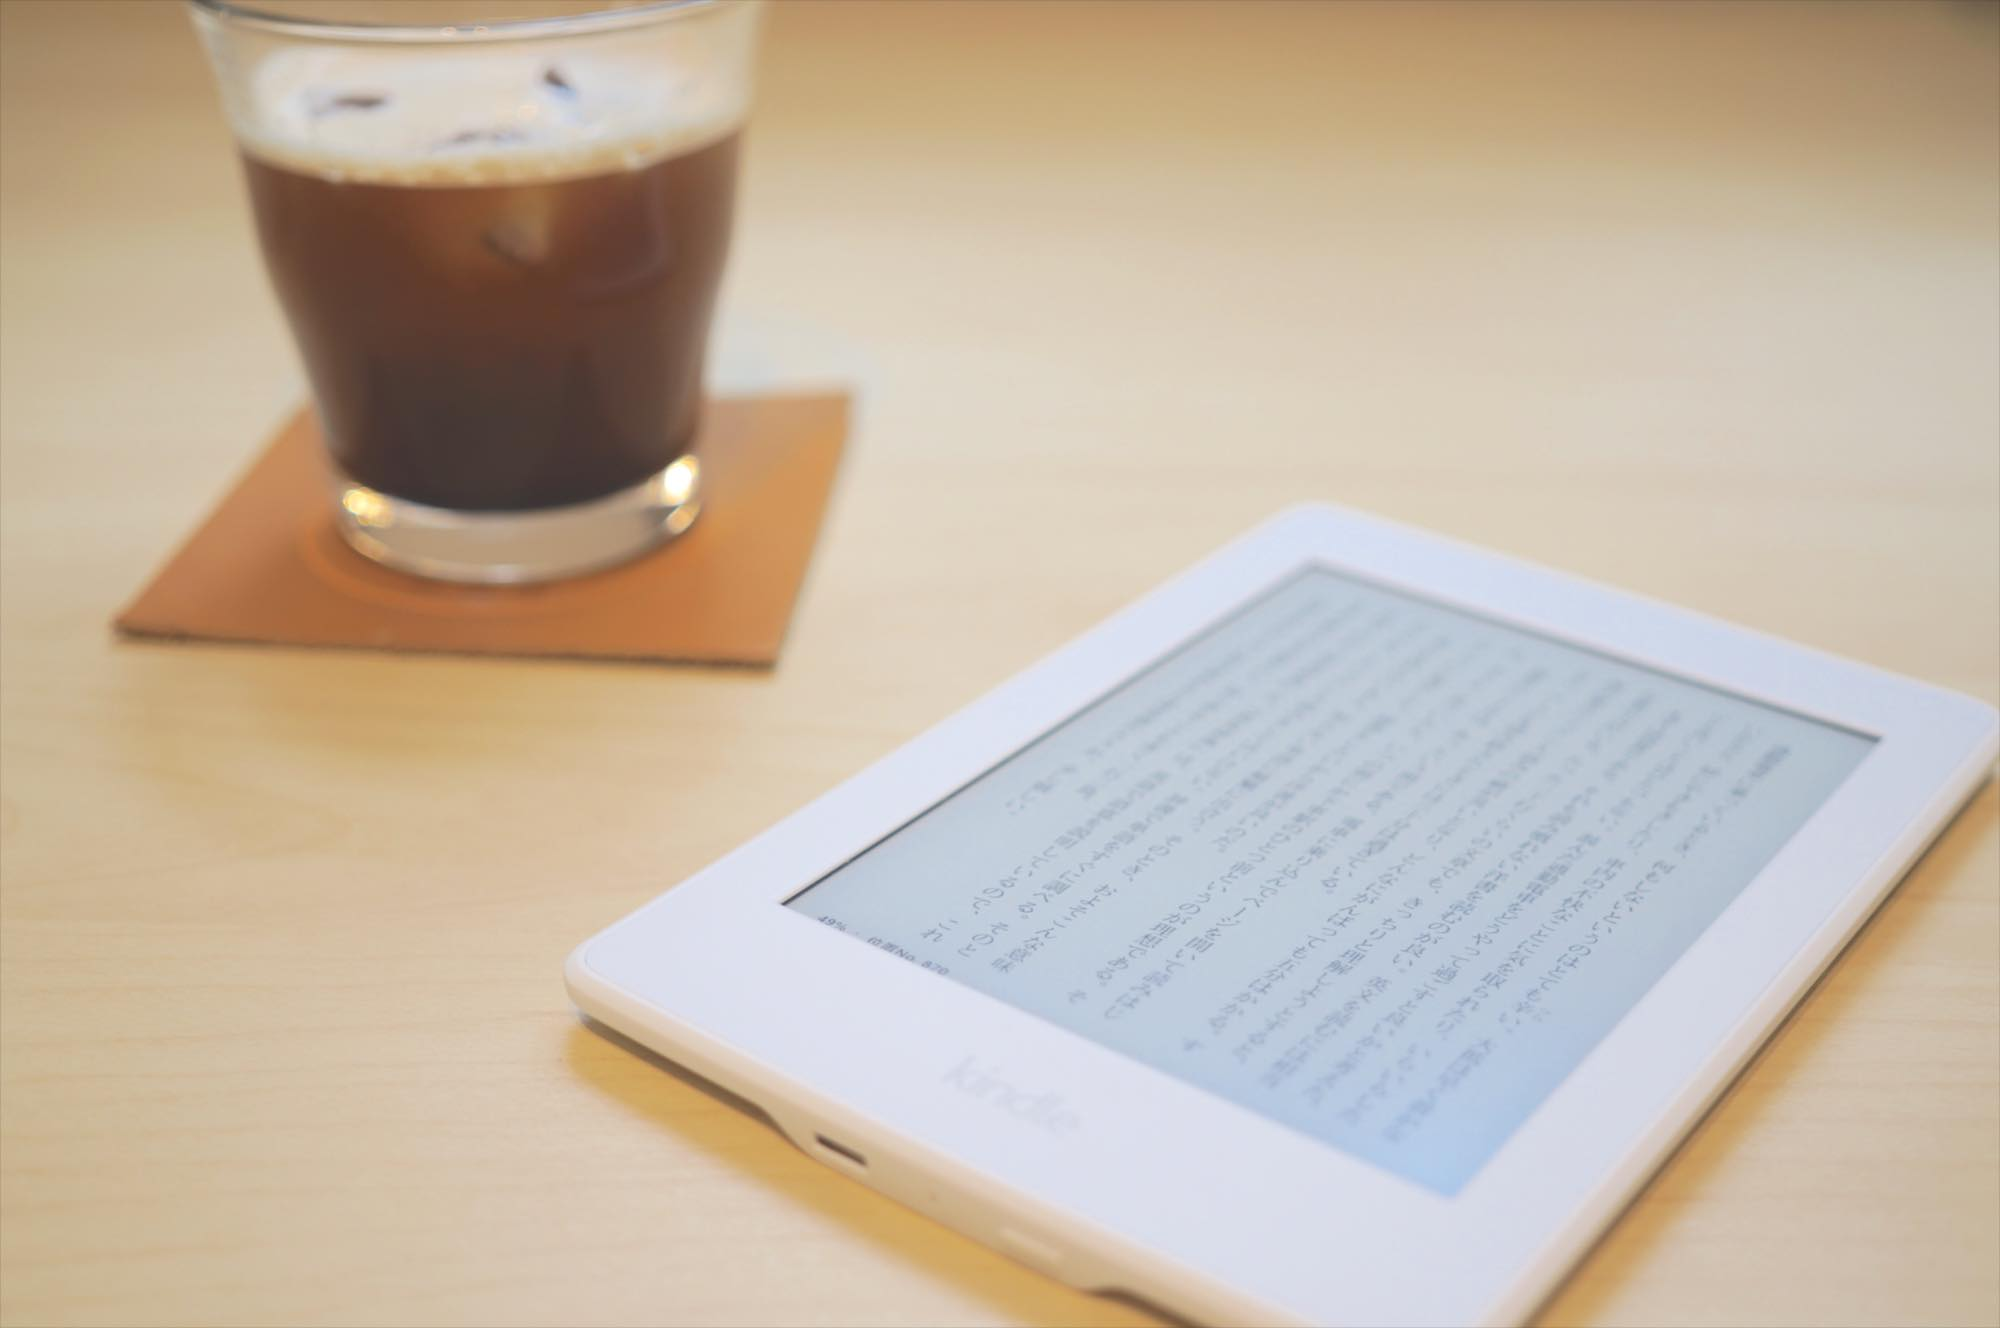 白いKindle Paperwhiteと珈琲